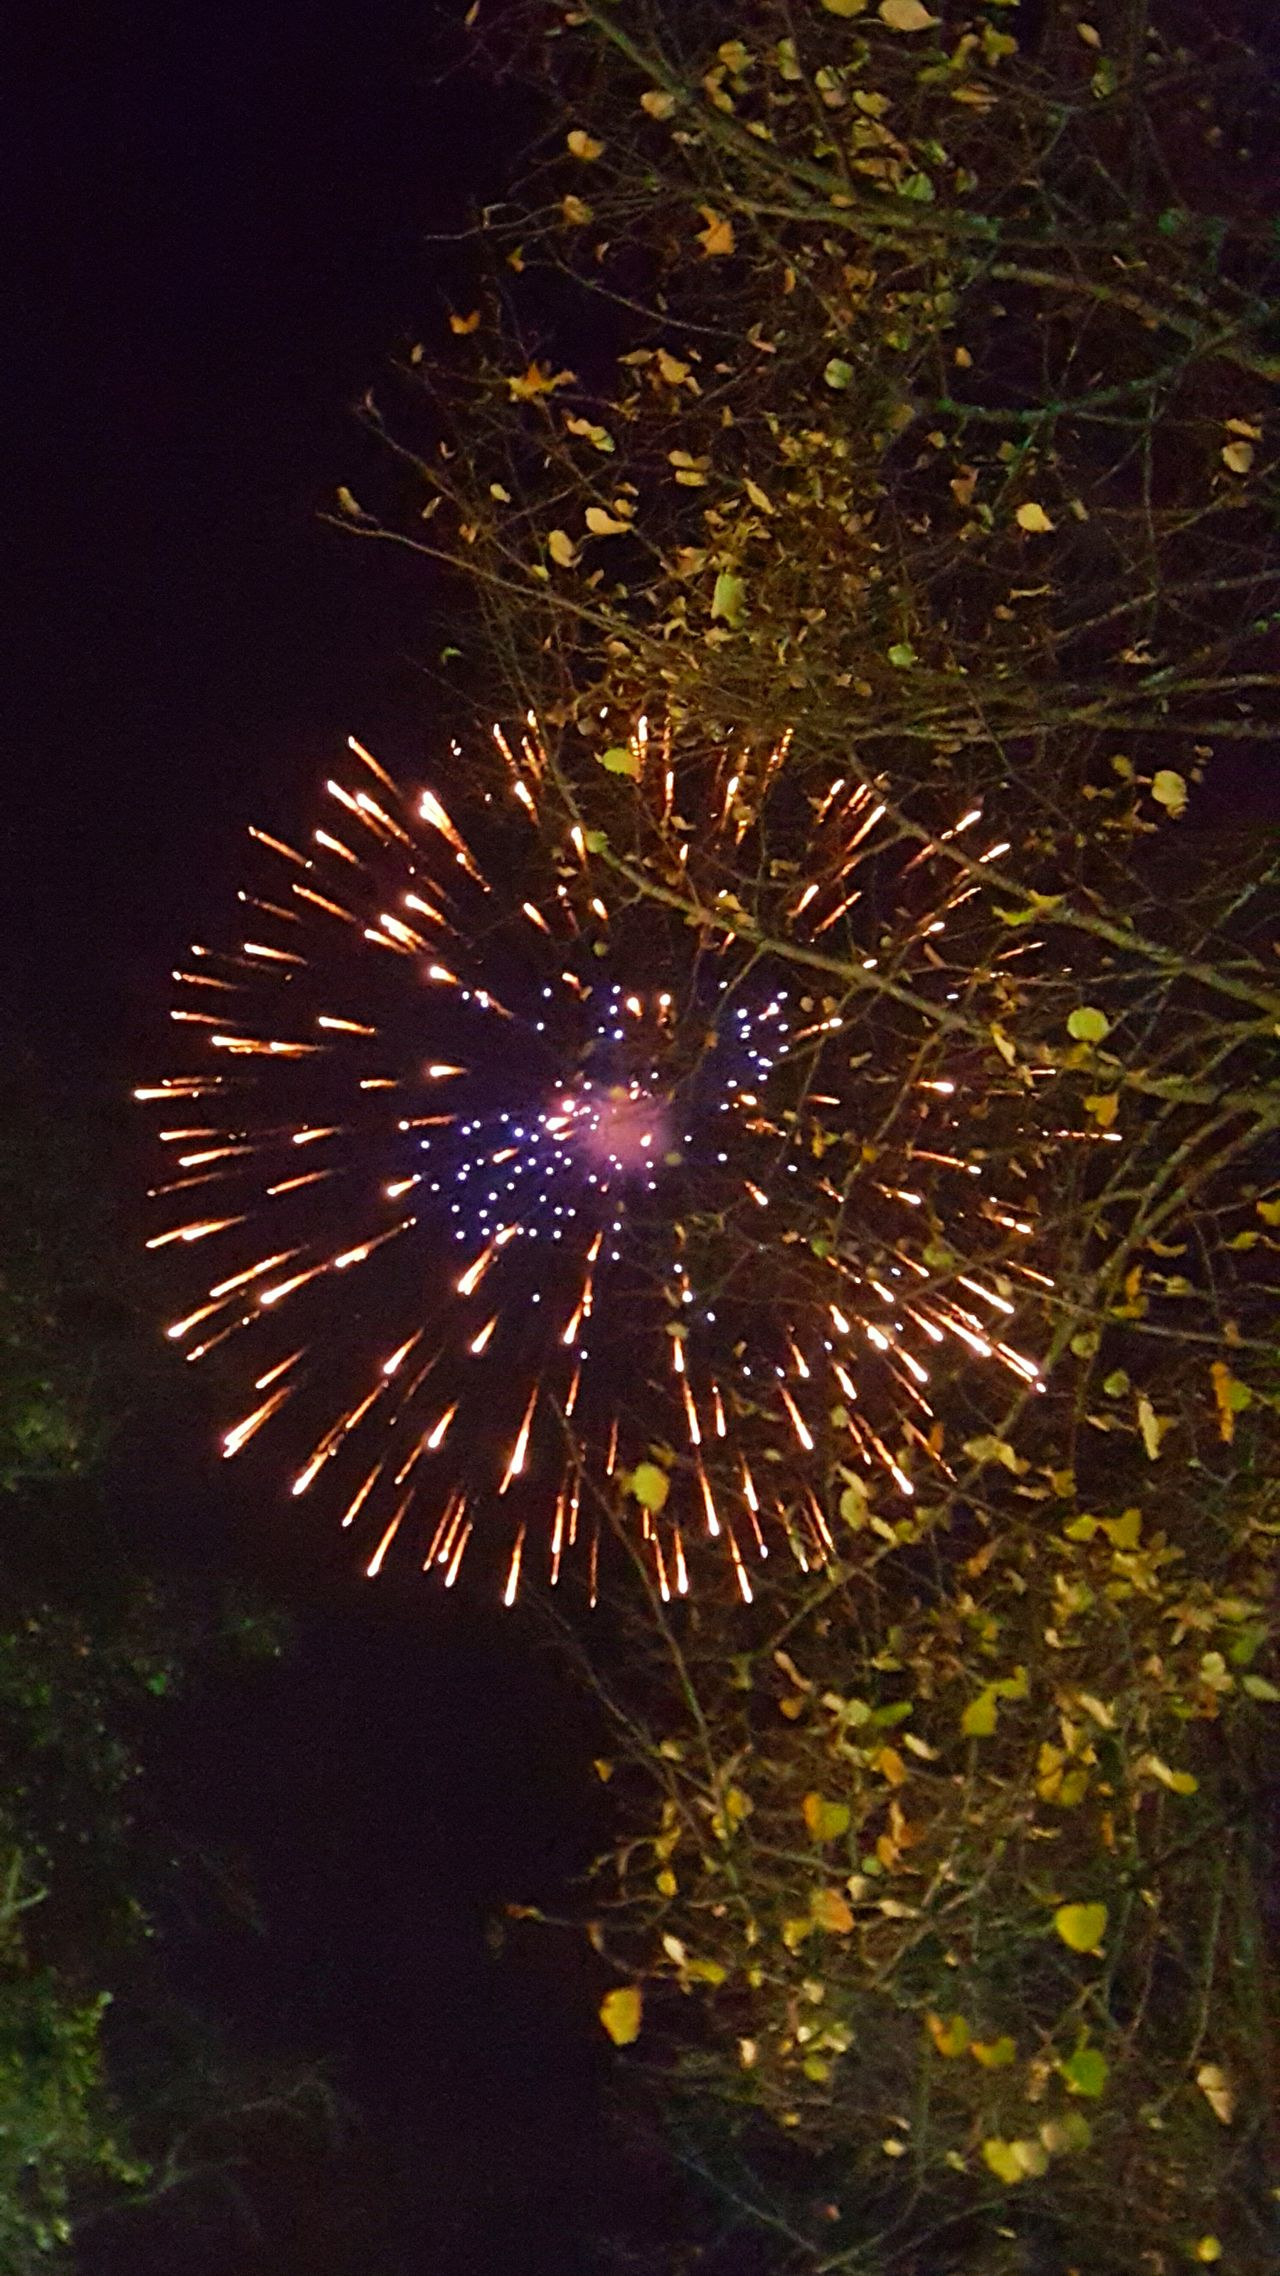 Firework Display Exploding Illuminated Outdoors Firework - Man Made Object Firework Celebration Billnewlandphotos Night Tree Event Sky Motion No People Cheshire Knutsford Tofts Cricket Club Plumley Lower Peover Cheshire Wildlife Bonfire Night Bonfire Bonfire🔥 Guy Fawkes Britain